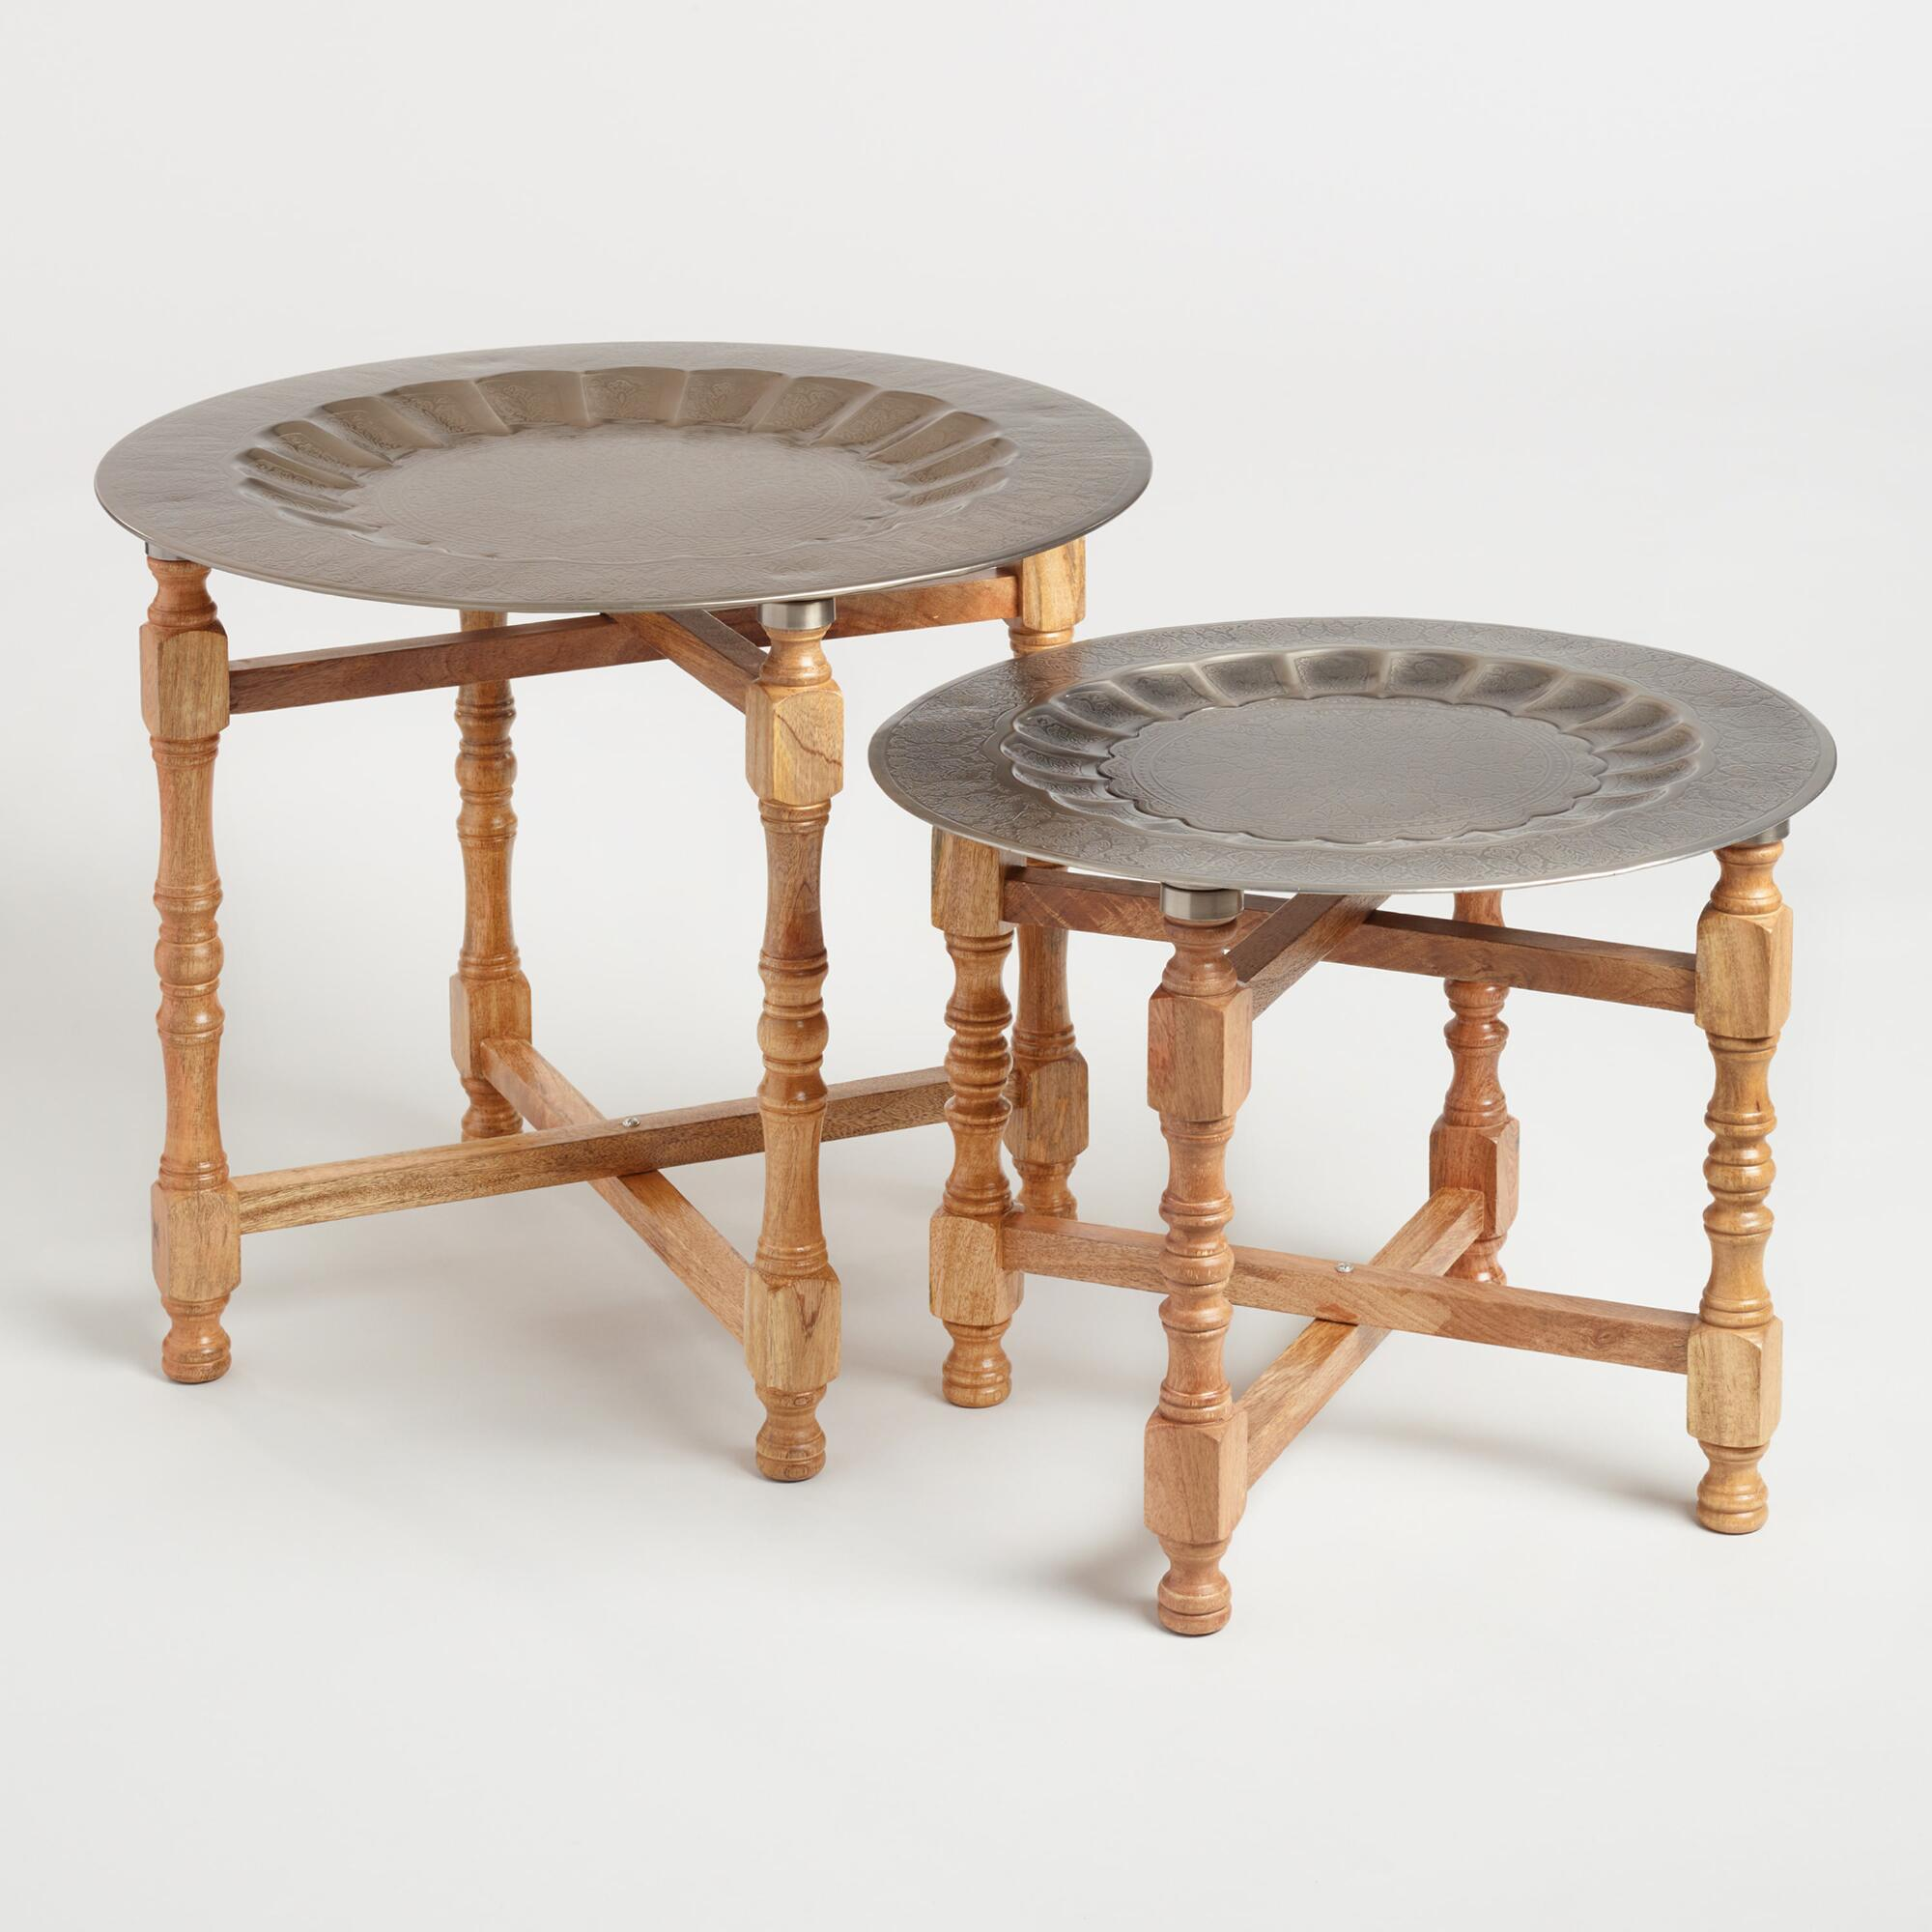 Metal and Wood Arya Table Set of 2: Brown/Silver by World Market